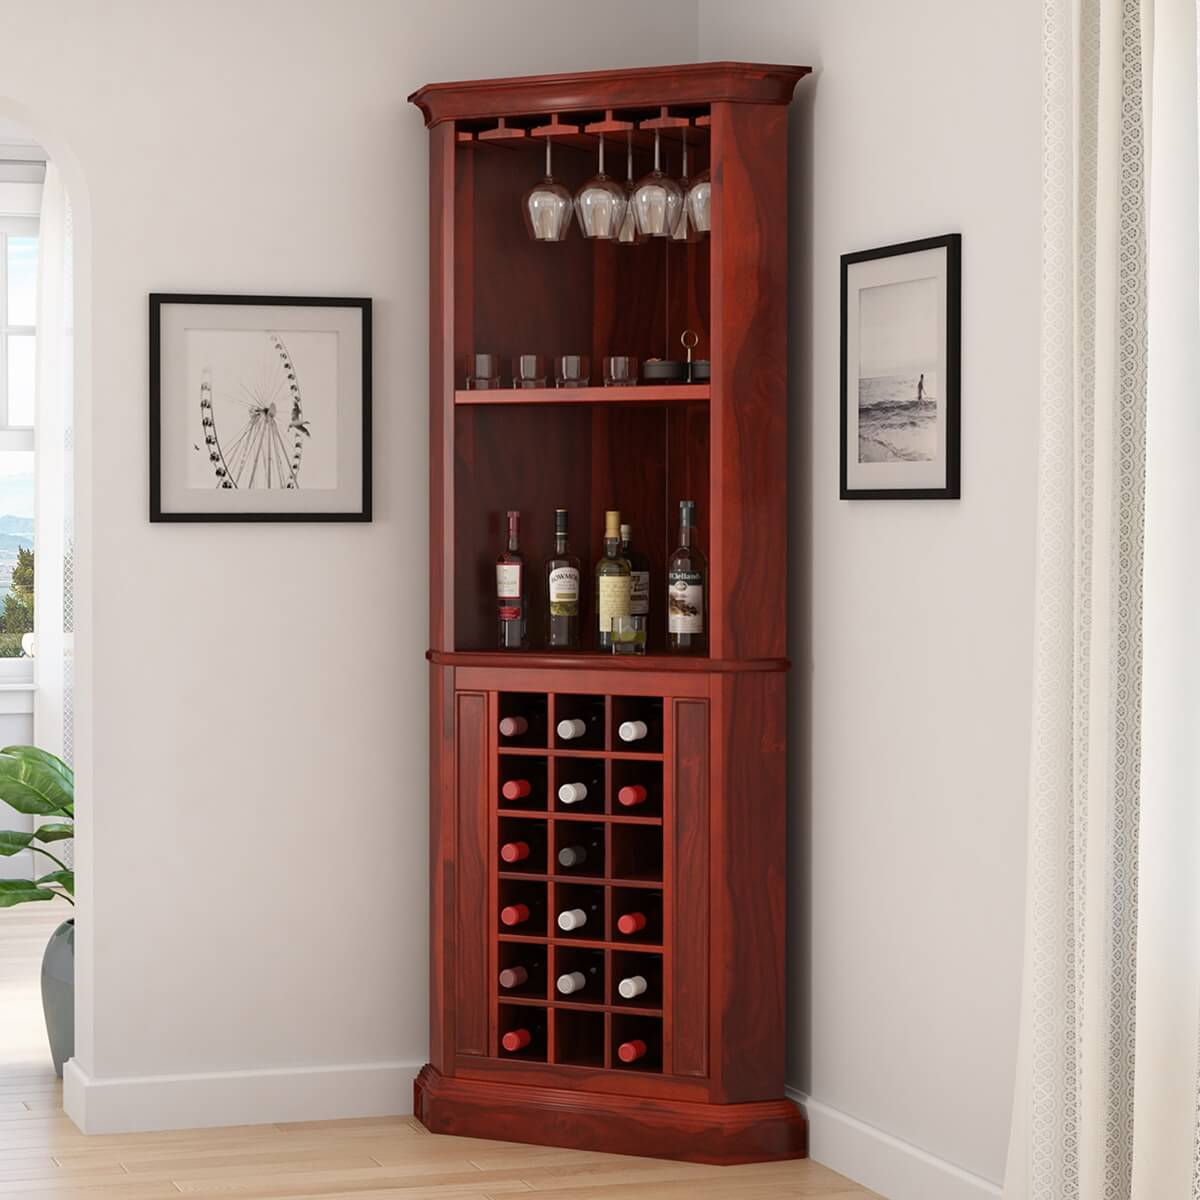 bottles cabinet rack organized of kitchen furniture full plans pub reviews pictures wine rustic bar get table room size all coffee